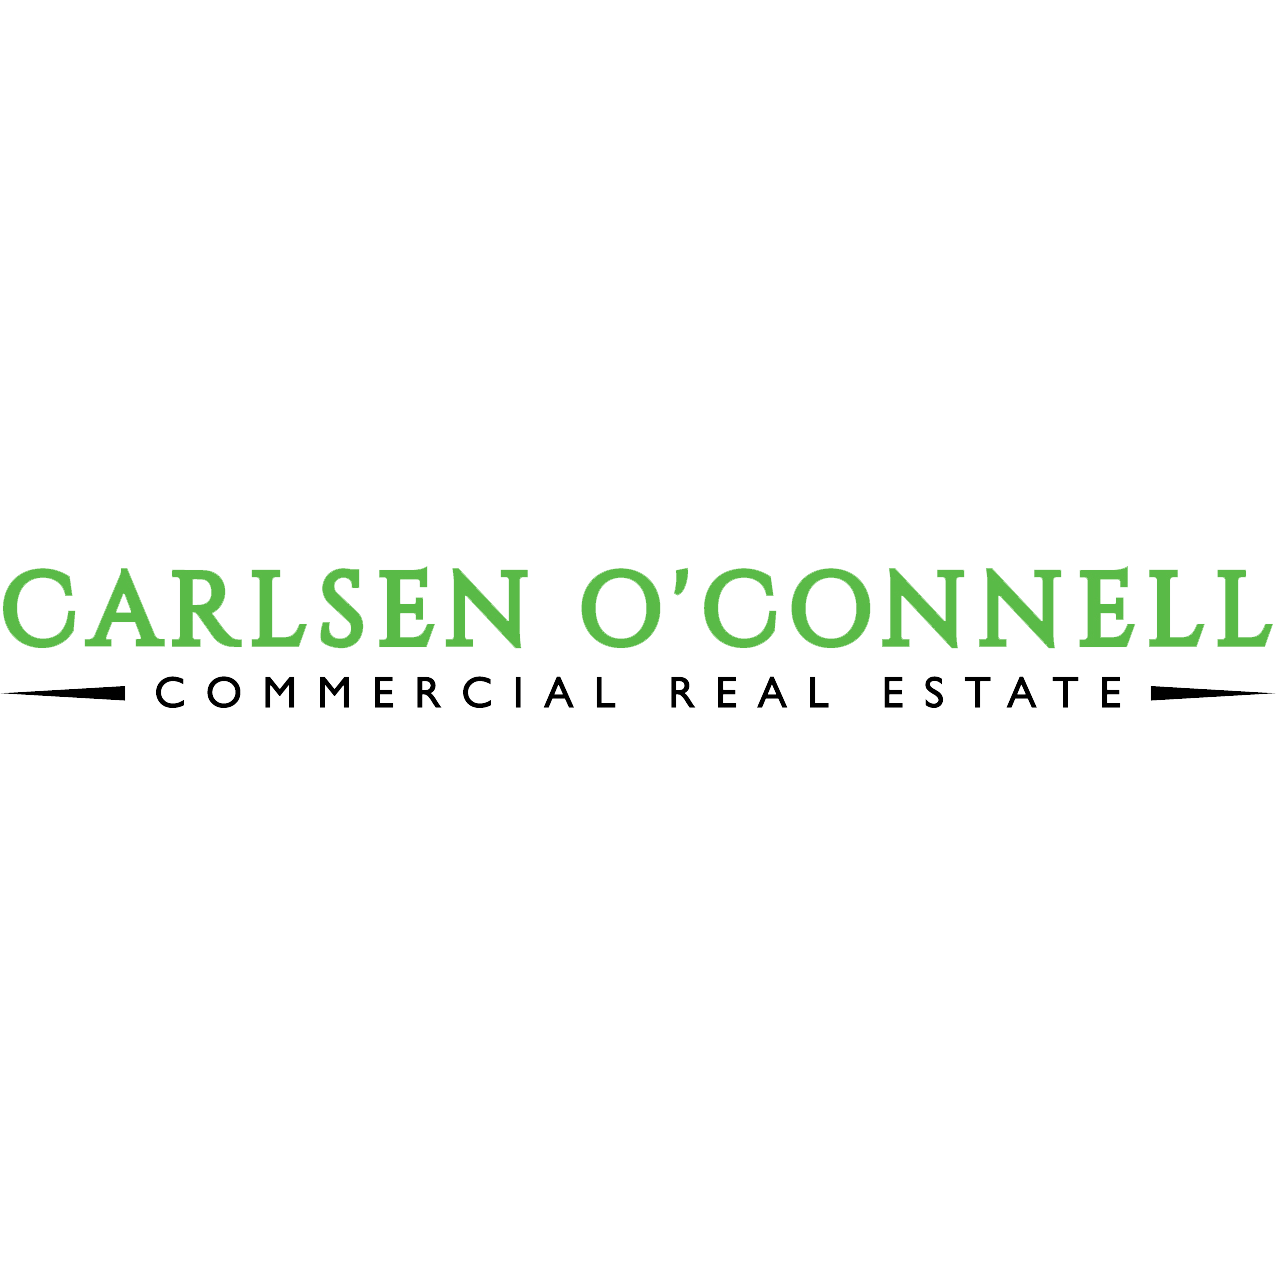 Carlsen O'Connell Commercial Real Estate